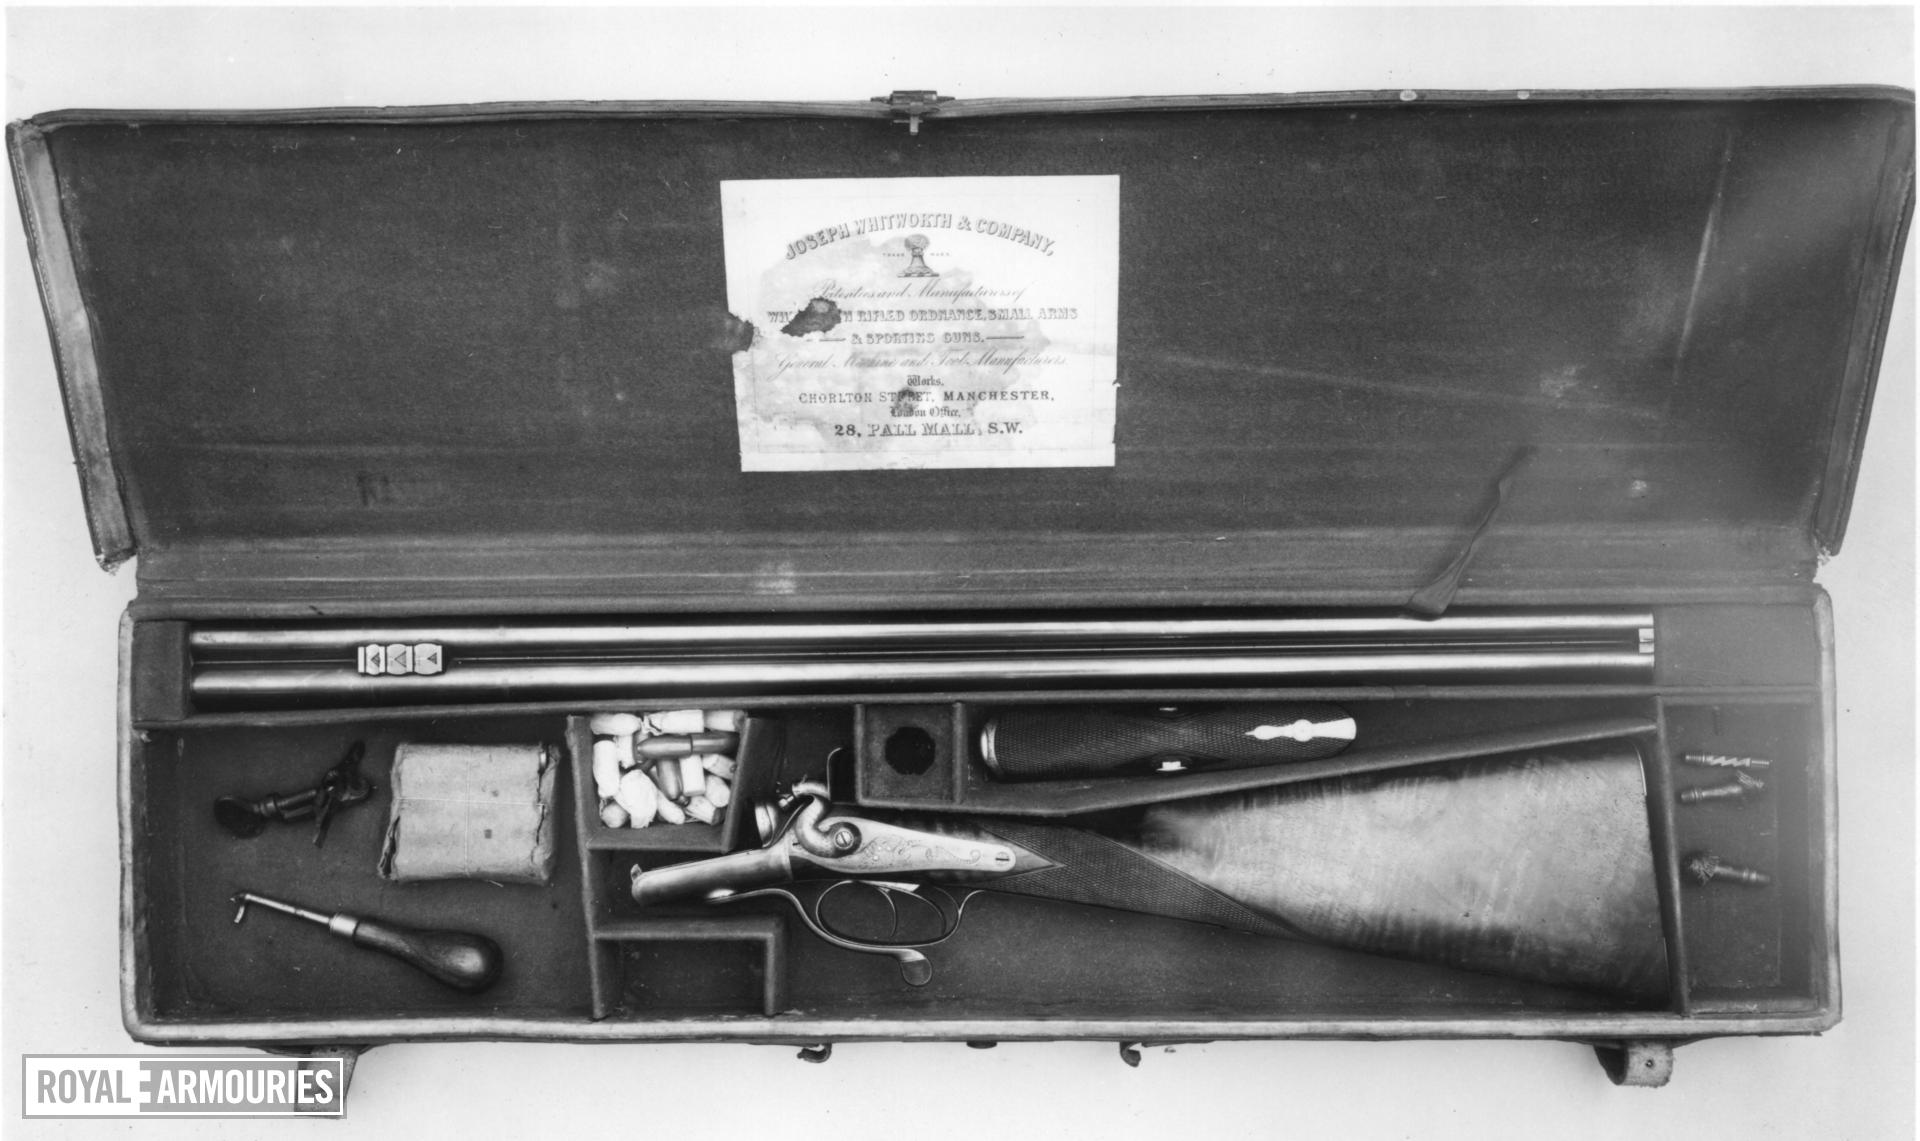 Percussion breech-loading sporting rifle - By Whitworth Cased